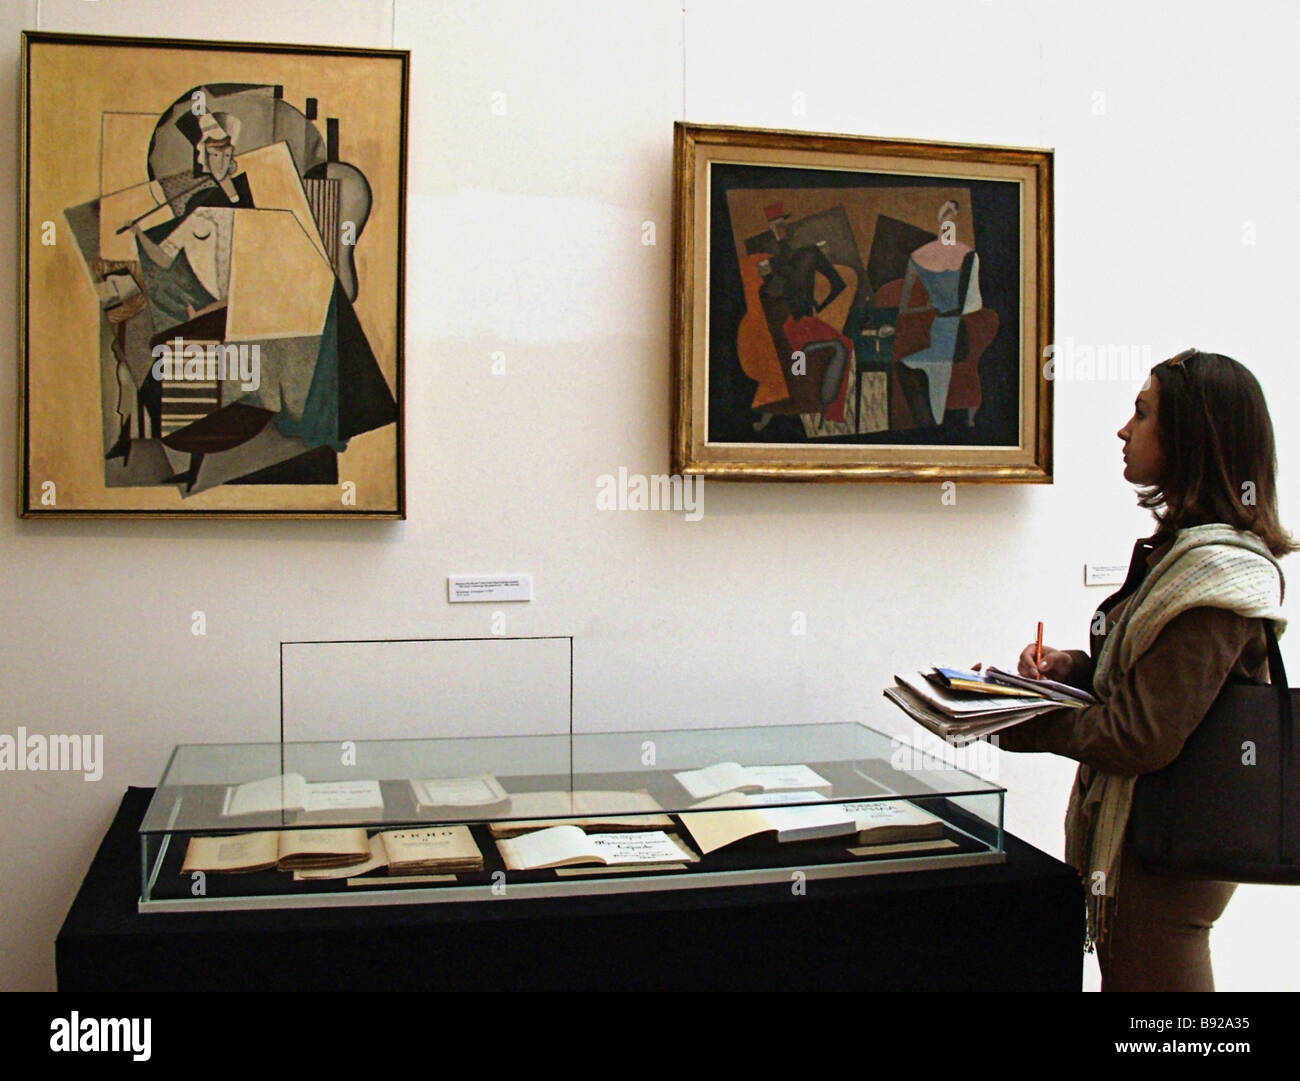 Russian Art Collection Of Images